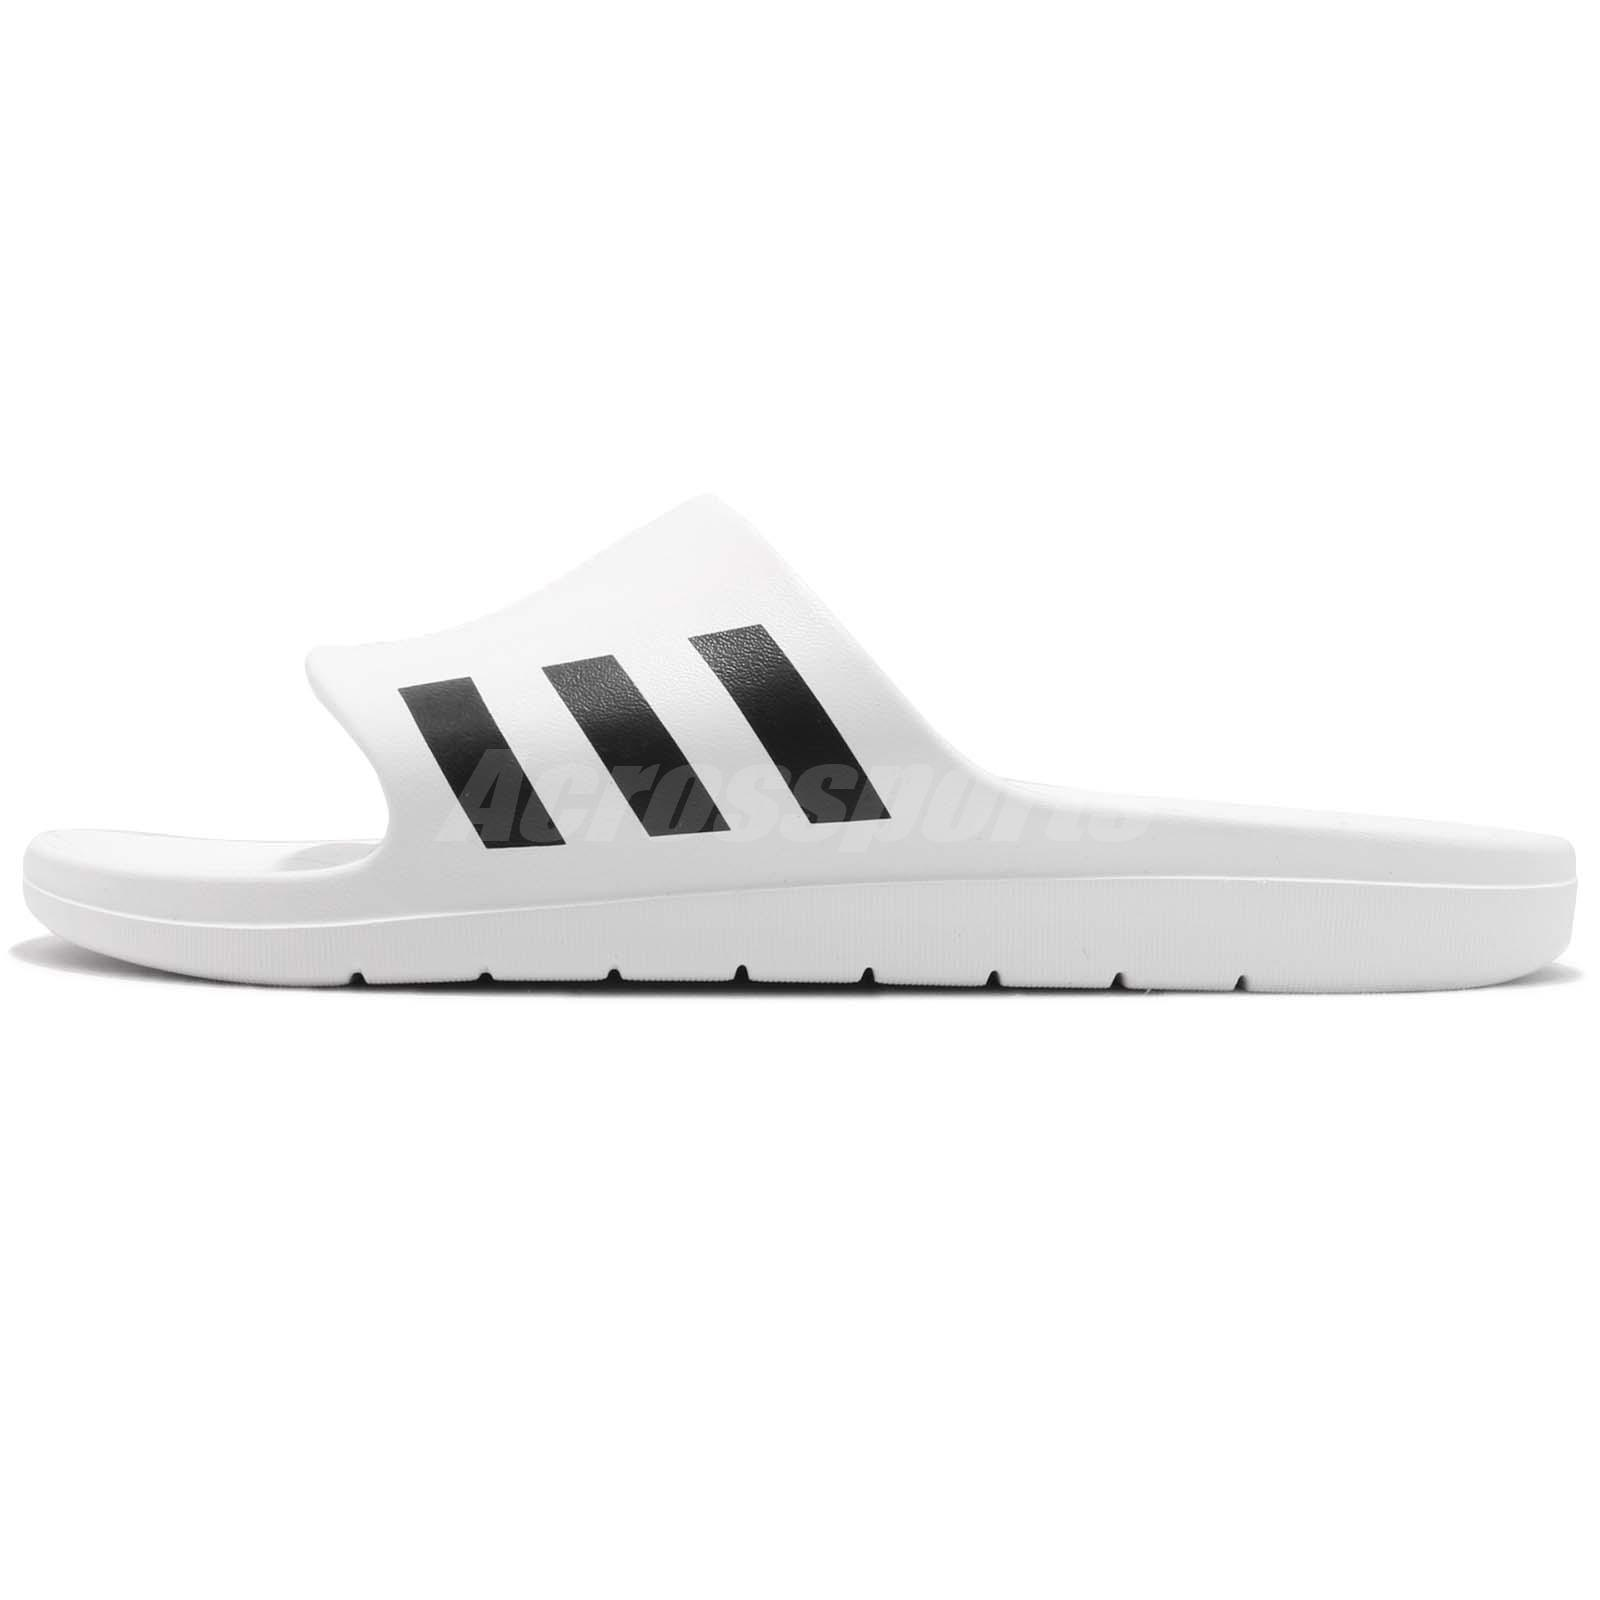 9b06f8d0941 adidas Aqualette White Black Men Sports Sandals Slides Slippers ...